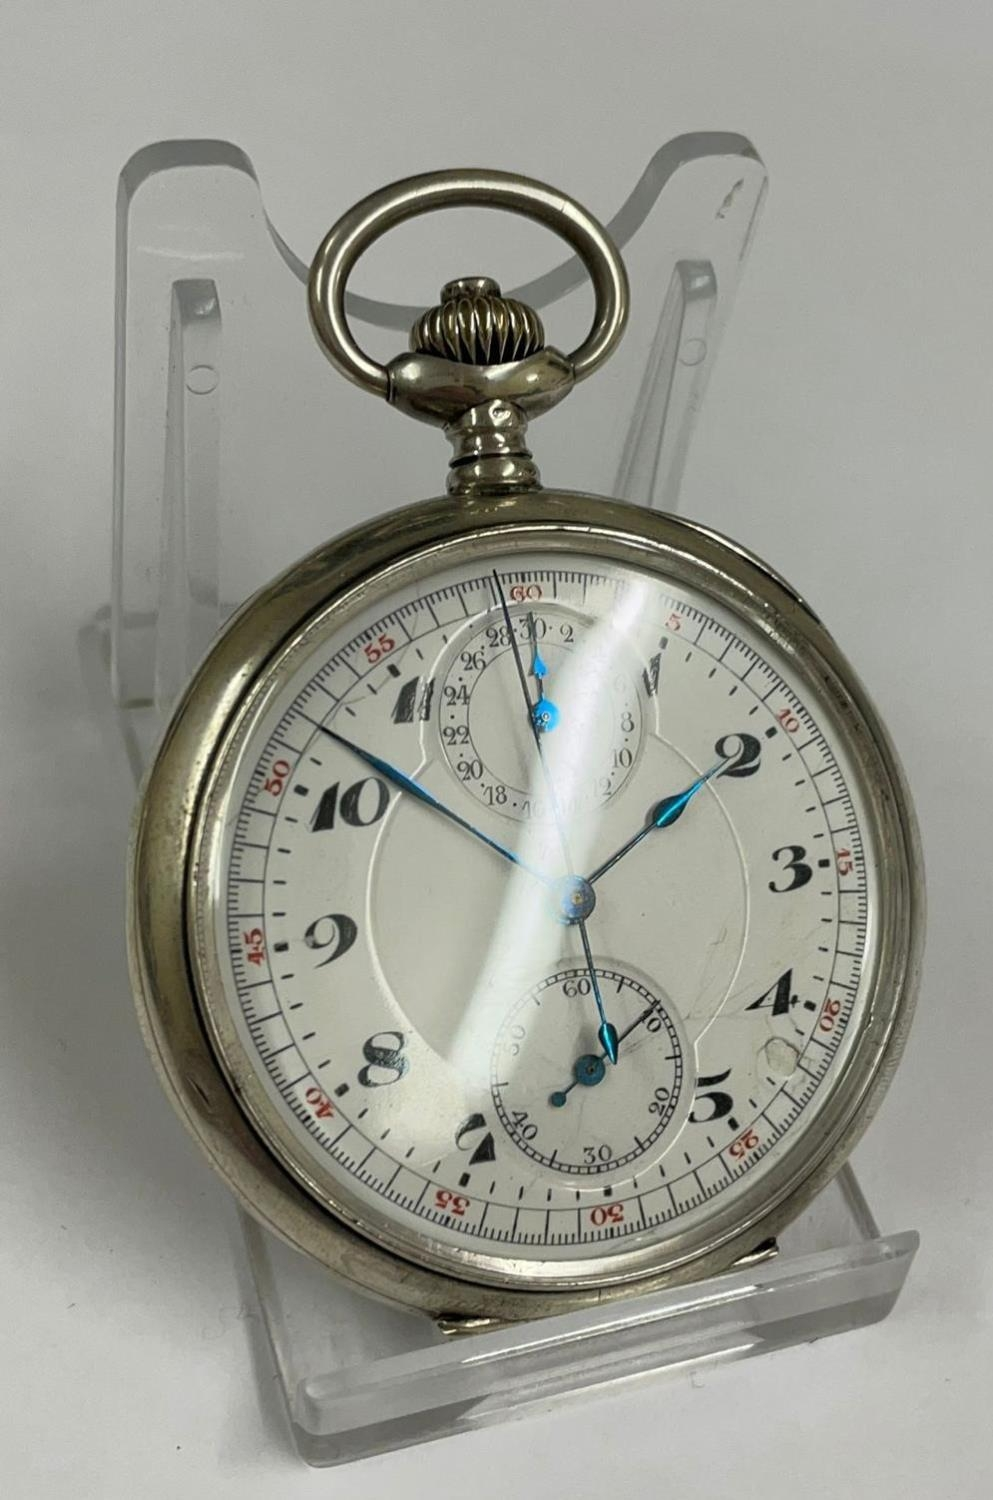 Vintage Silver Chronograph Pocket Watch. Working & Stop Function are working but sold with no - Image 2 of 6